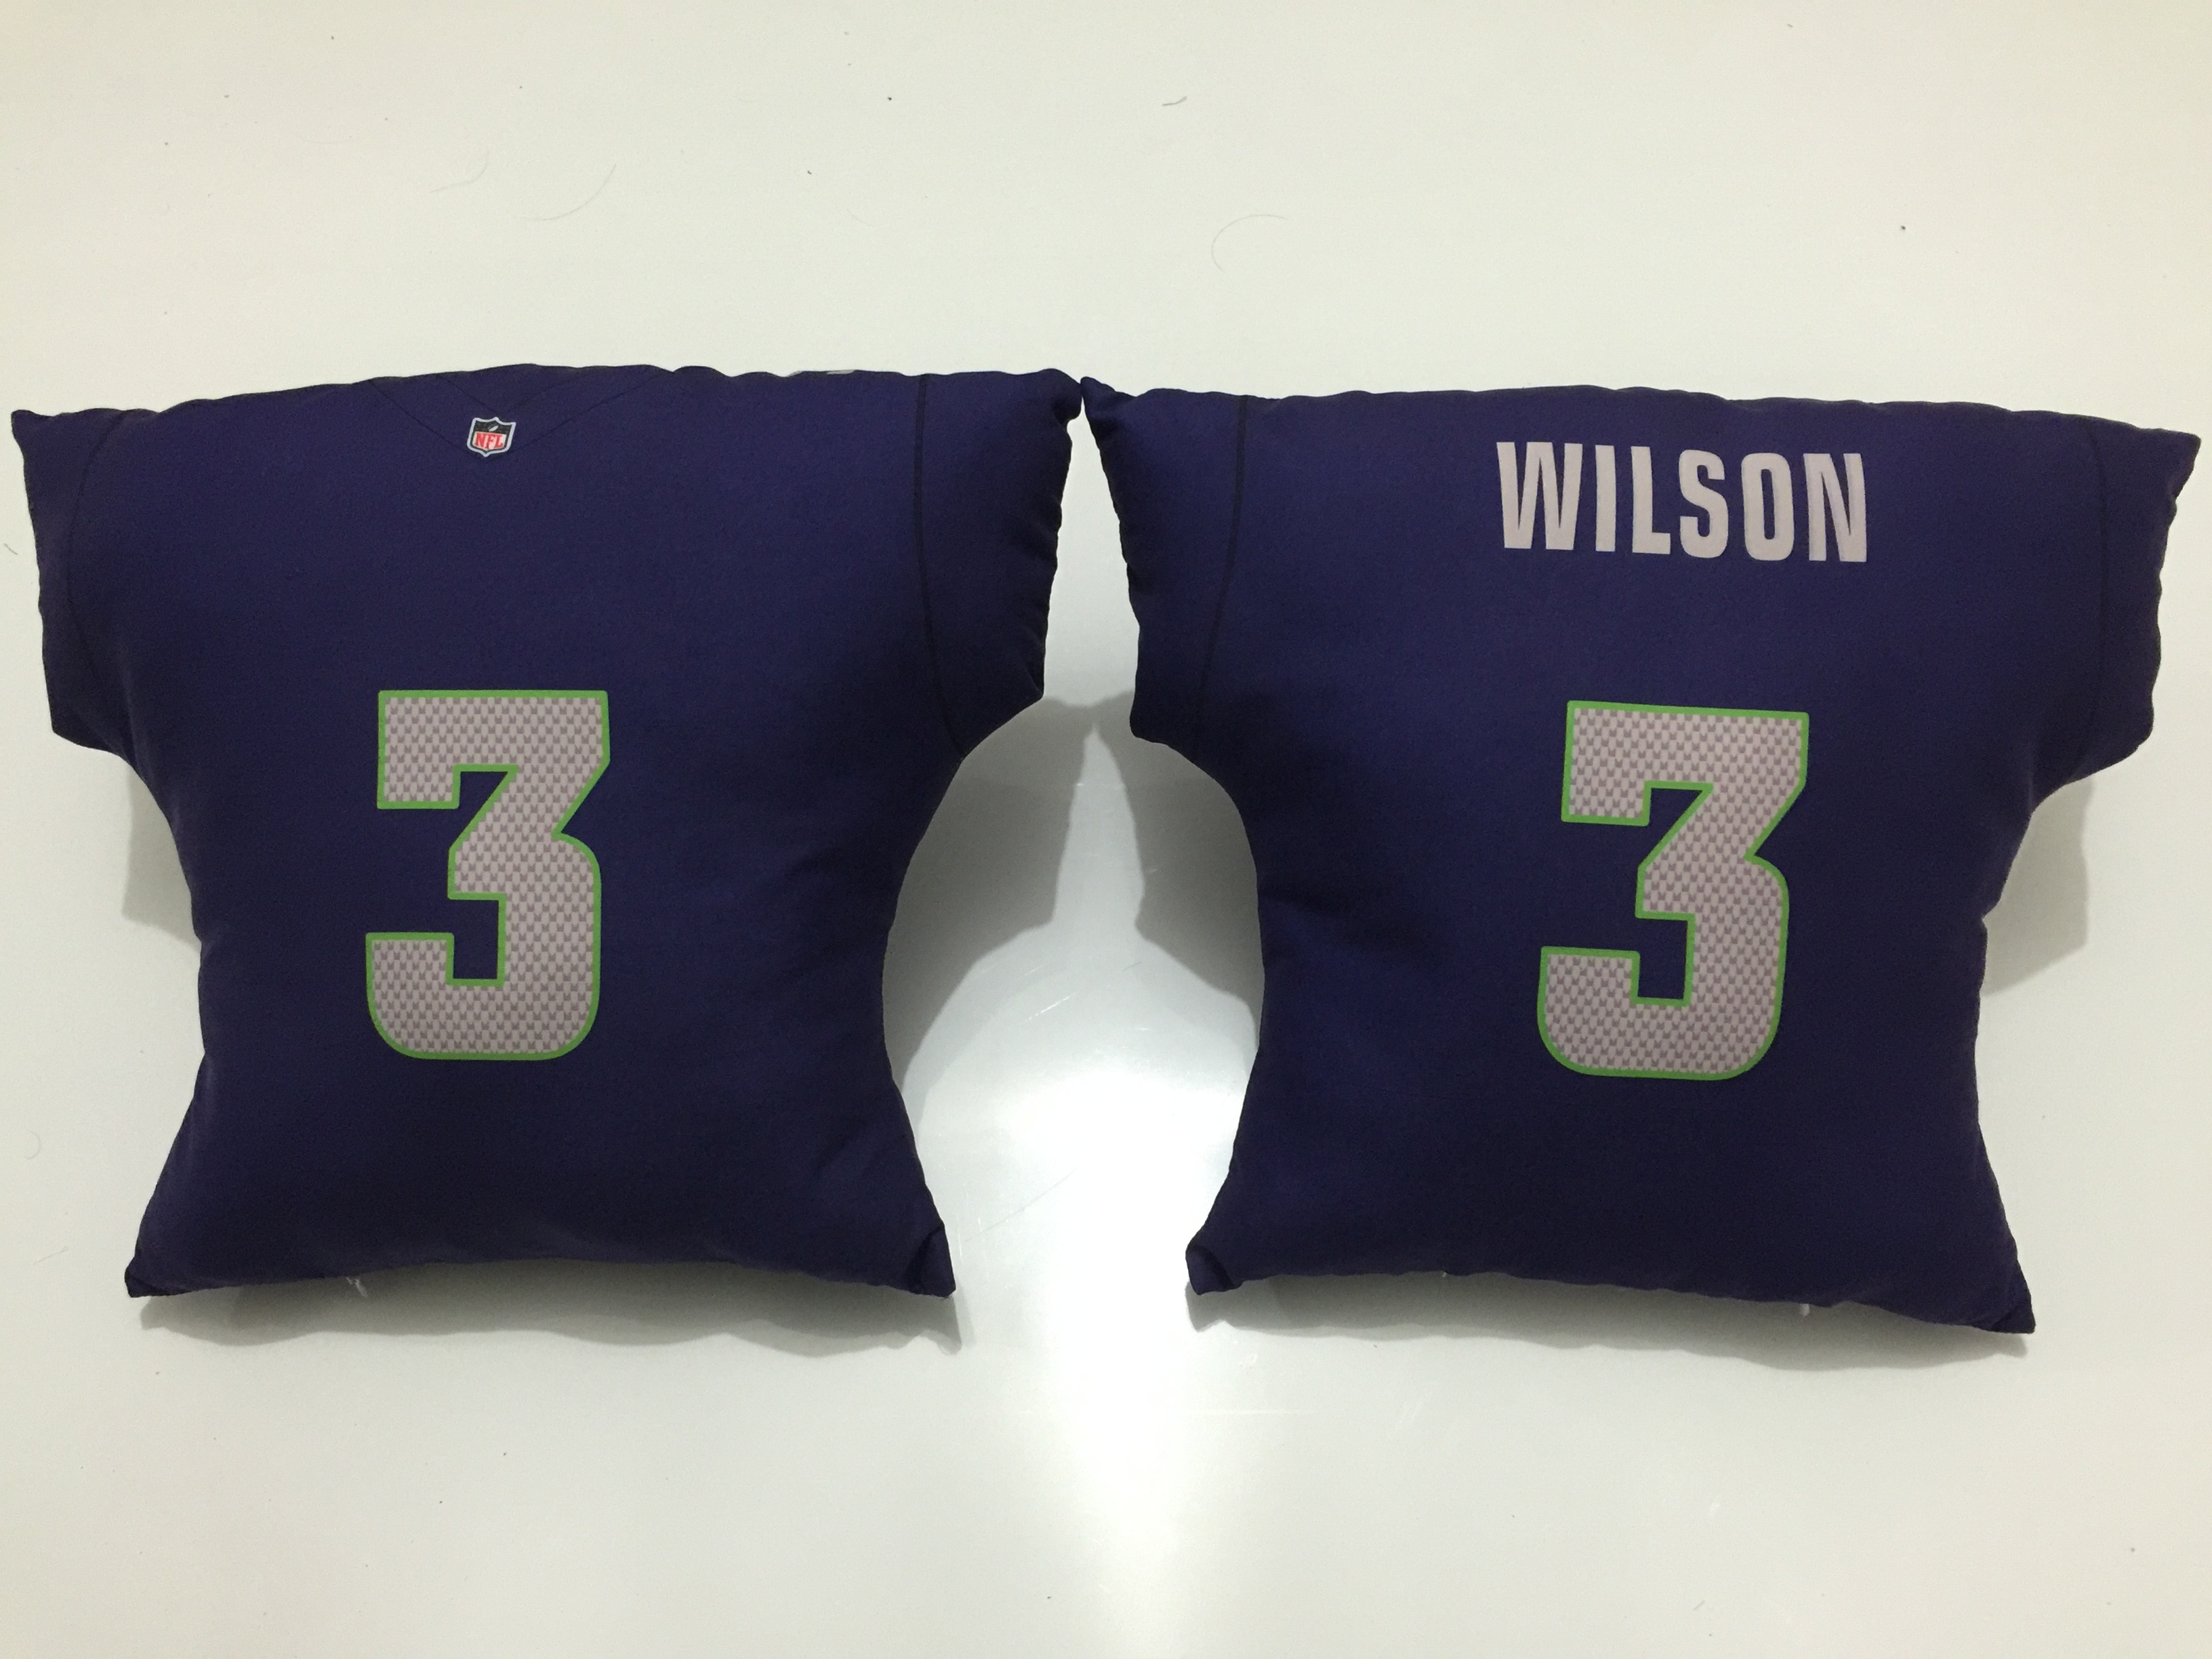 Seattle Seahawks 3 Russell Wilson Navy NFL Pillow